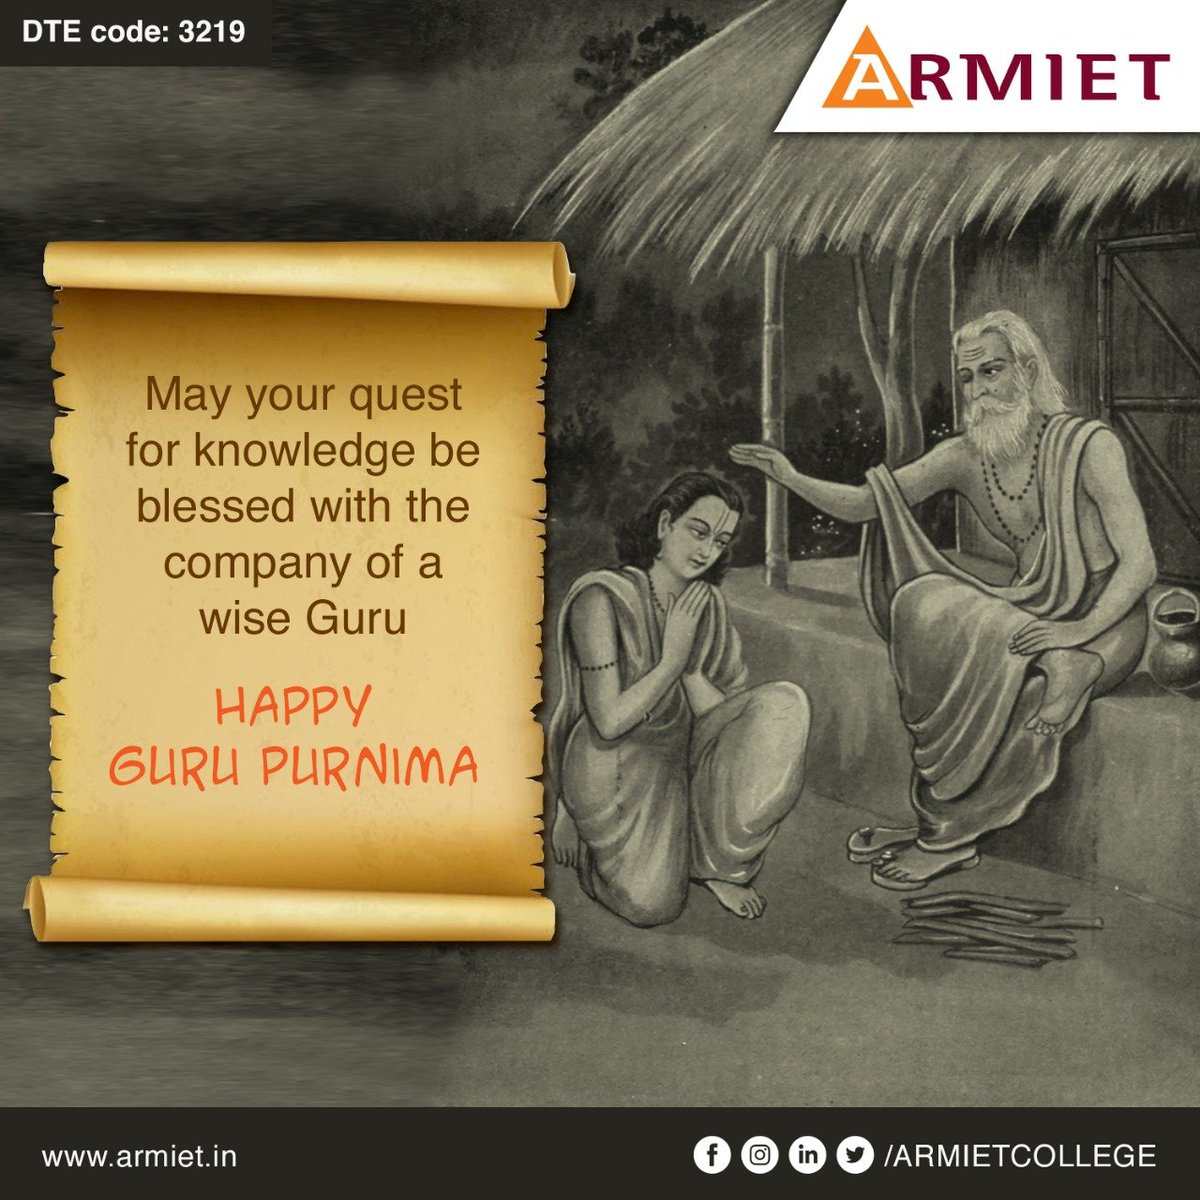 Acquiring valuable knowledge is essential for every individual who wishes to live with dignity.  Every individual needs a Guru who can be their dependable guide in their journey to wisdom.  Happy Guru Purnima  #armiet #engineeringcollege #happygurupurnima #knowledge #guru